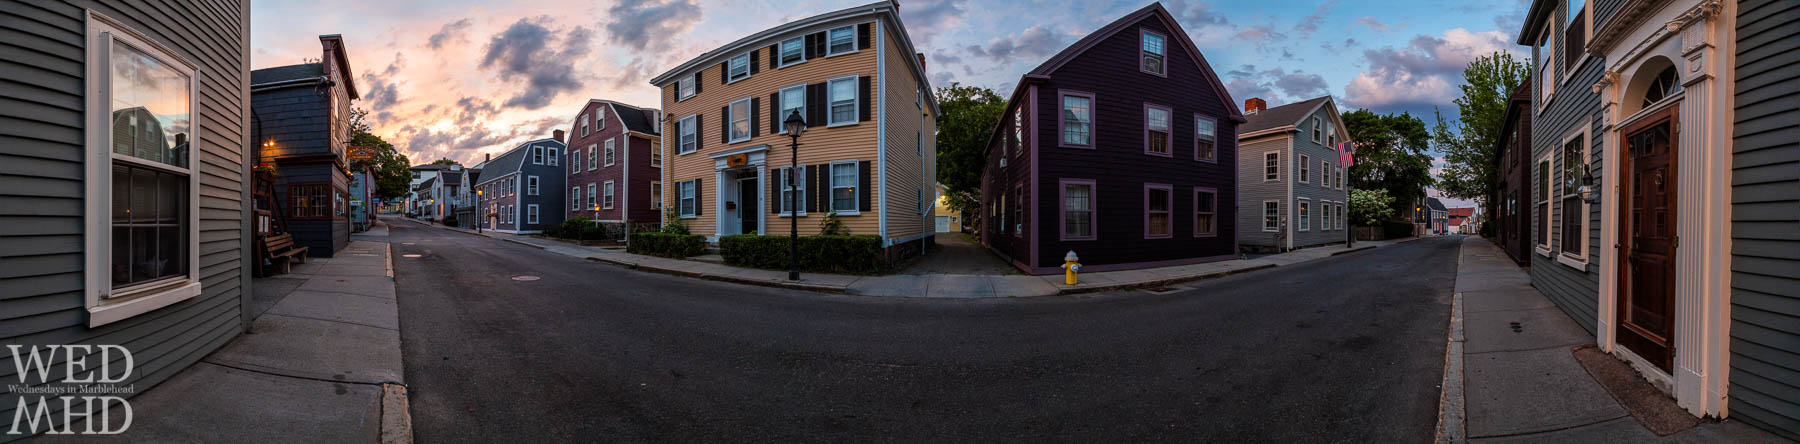 A 17-image panorama of State Street at sunset on a late June evening in Marblehead captures each stately home awash in different hues and colors